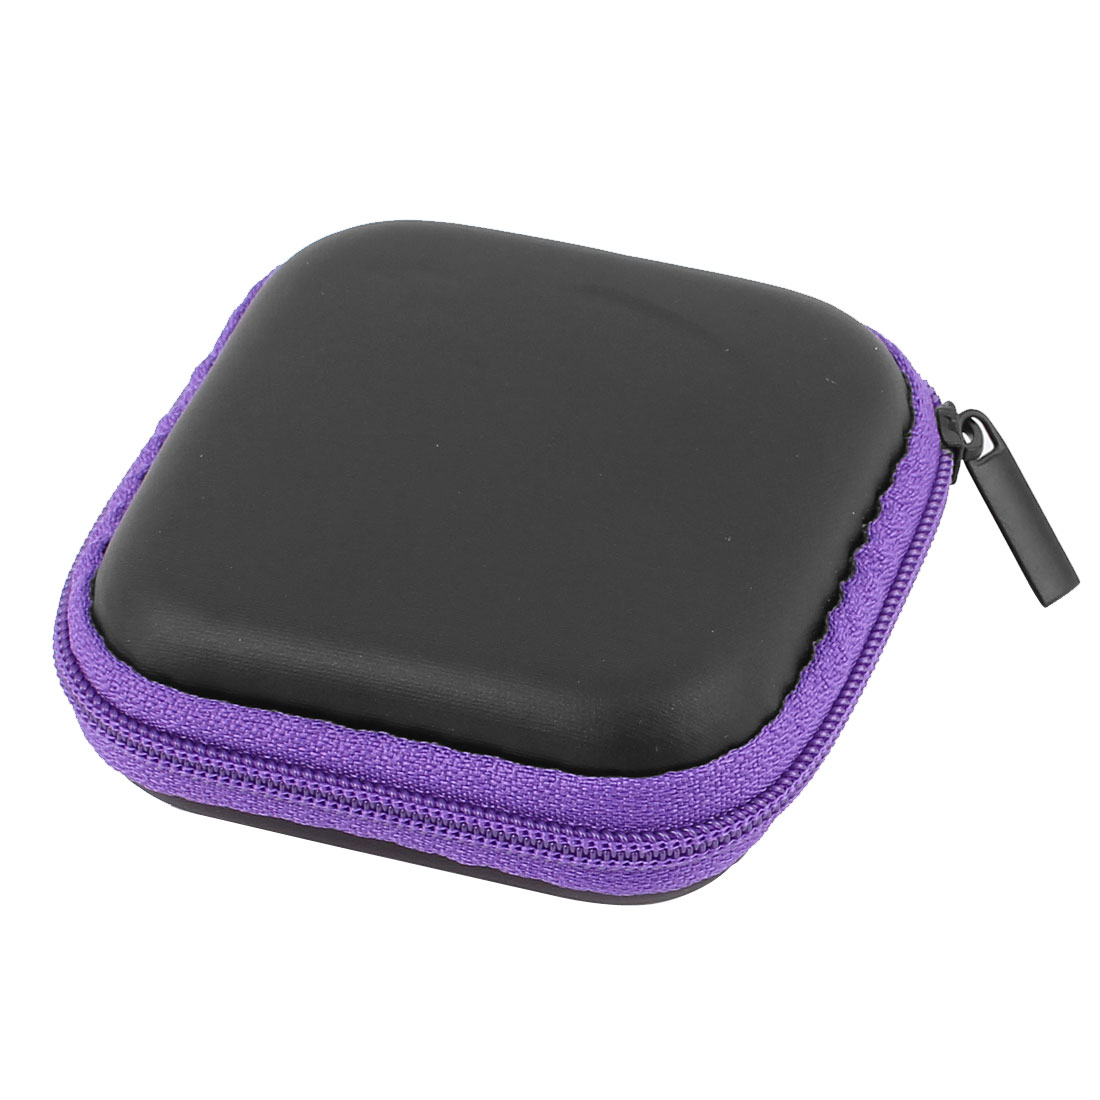 Earphone Cellphone Headphone Headset Earbuds Square Carrying Hold Case Pouch Storage Bag Box Pocket Purple